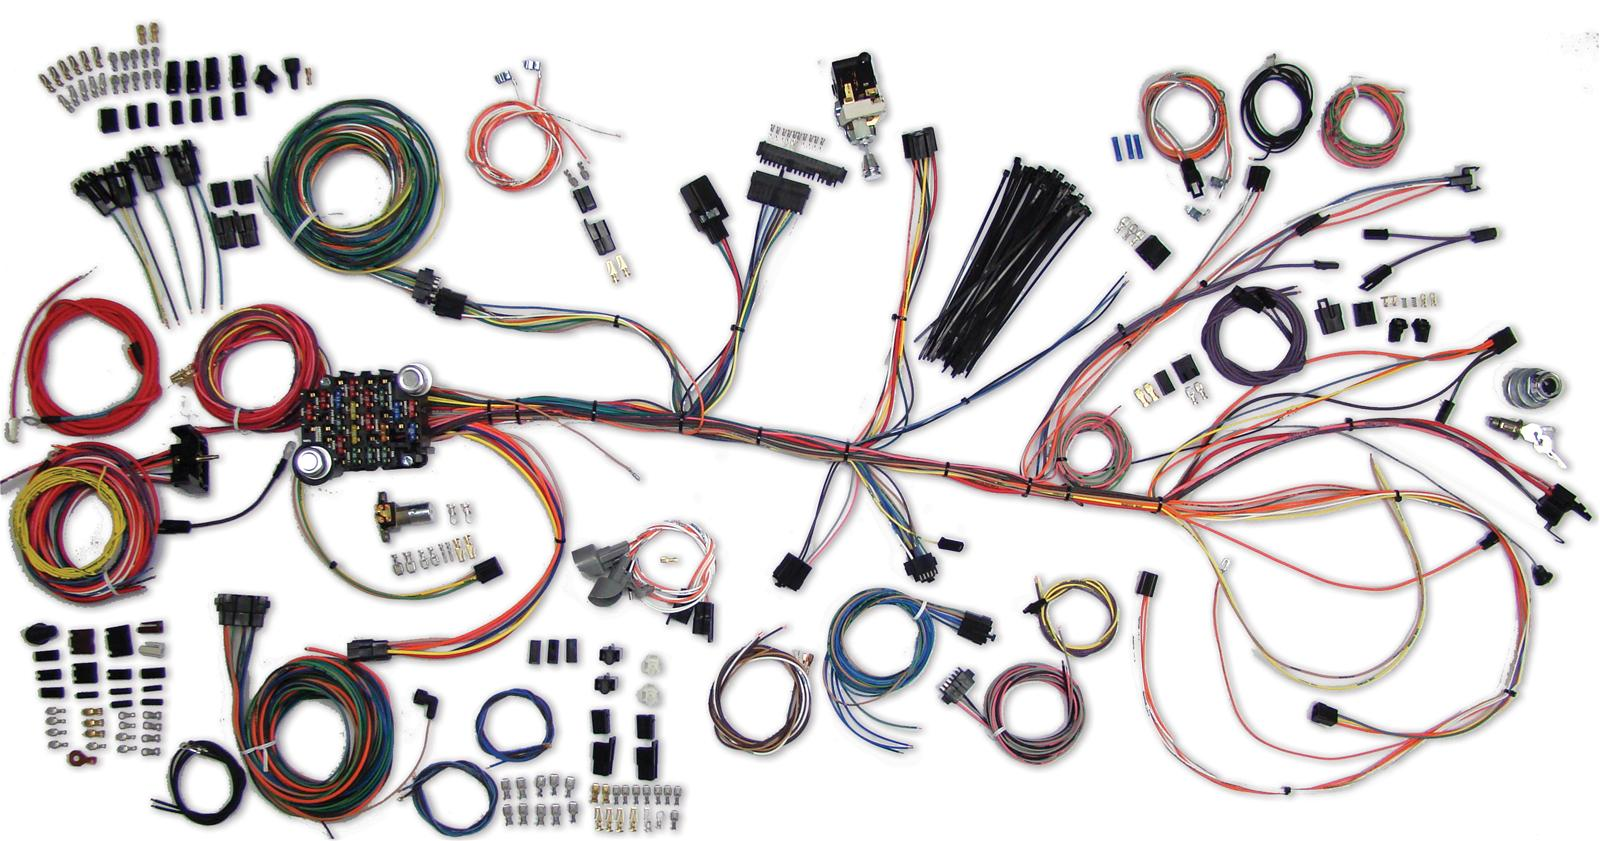 hight resolution of american autowire classic update series wiring harness kits 500981 wiring diagram besides 1966 chevy chevelle ss for sale on fuse and